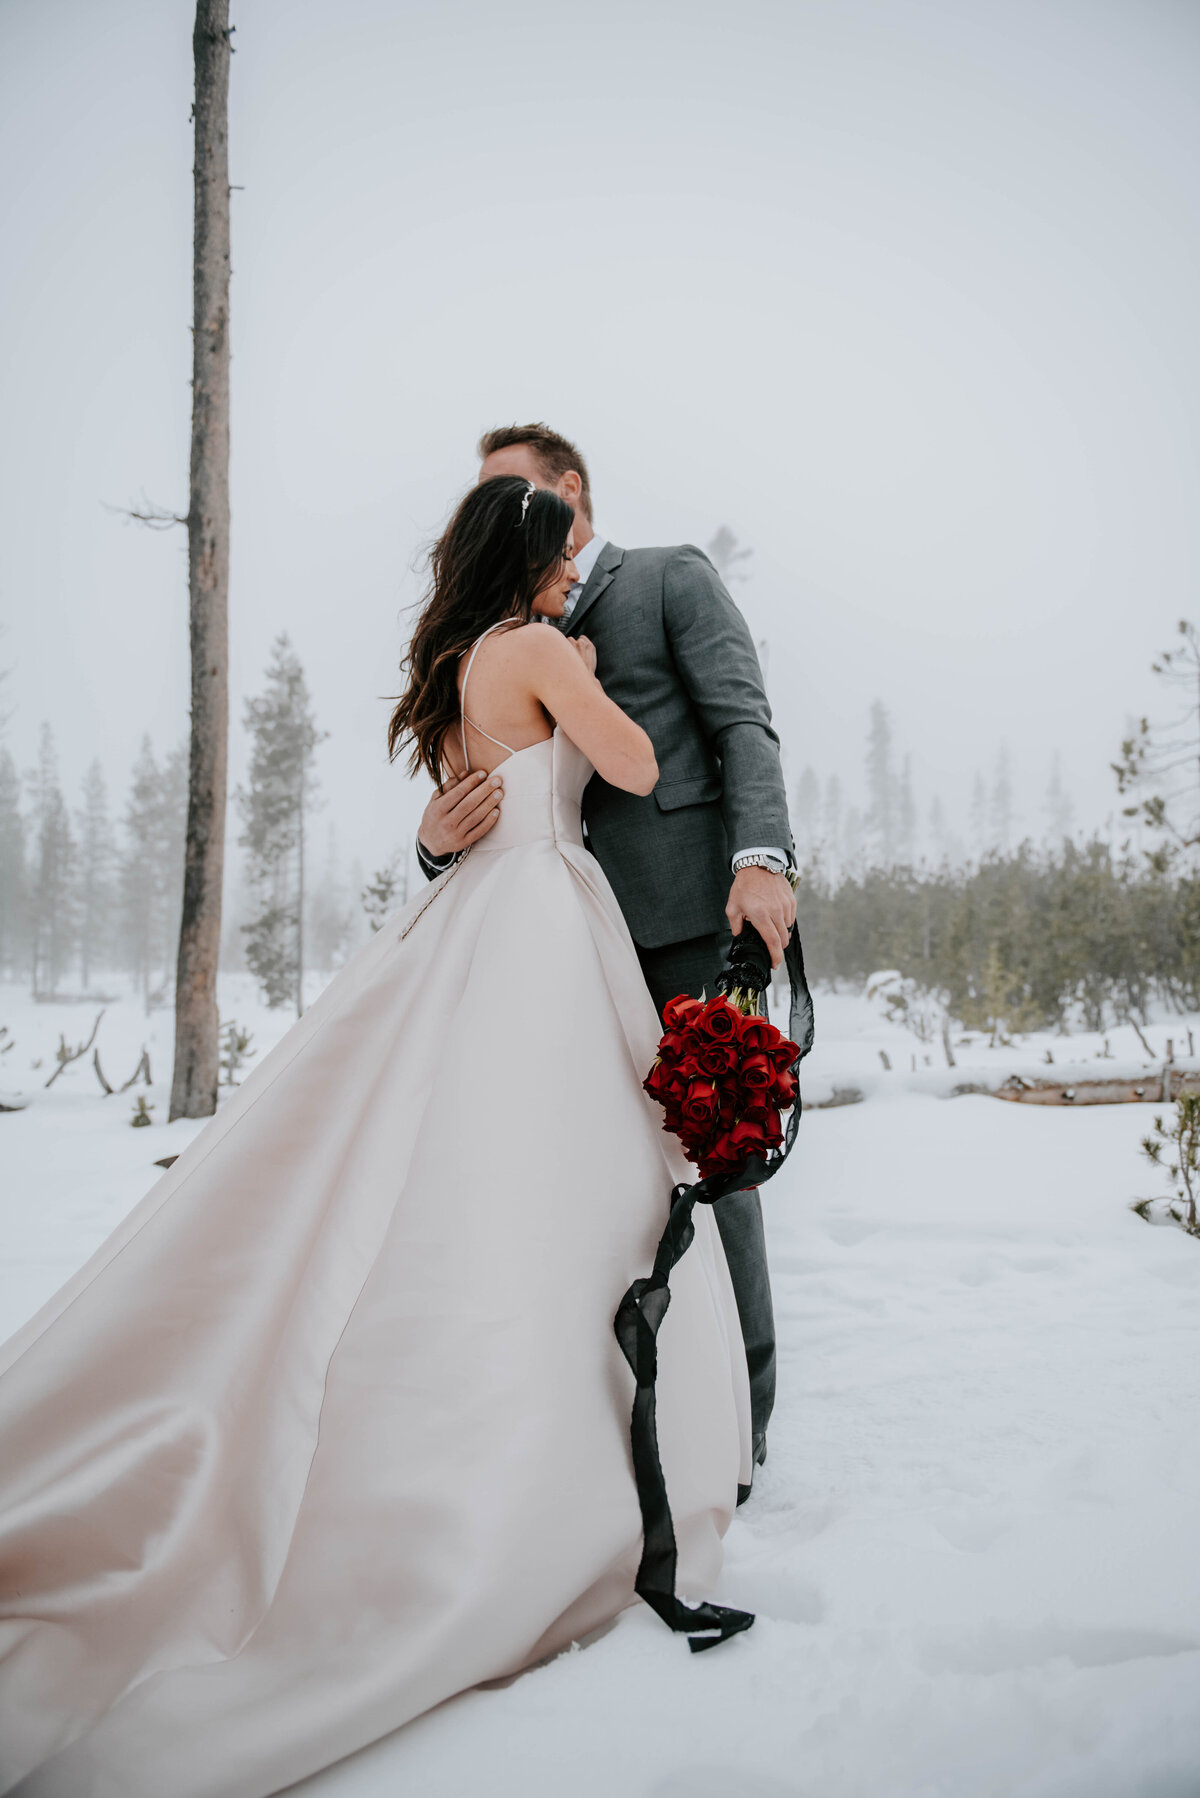 mt-bachelor-snow-winter-elopement-bend-oregon-wedding-photographer-2345